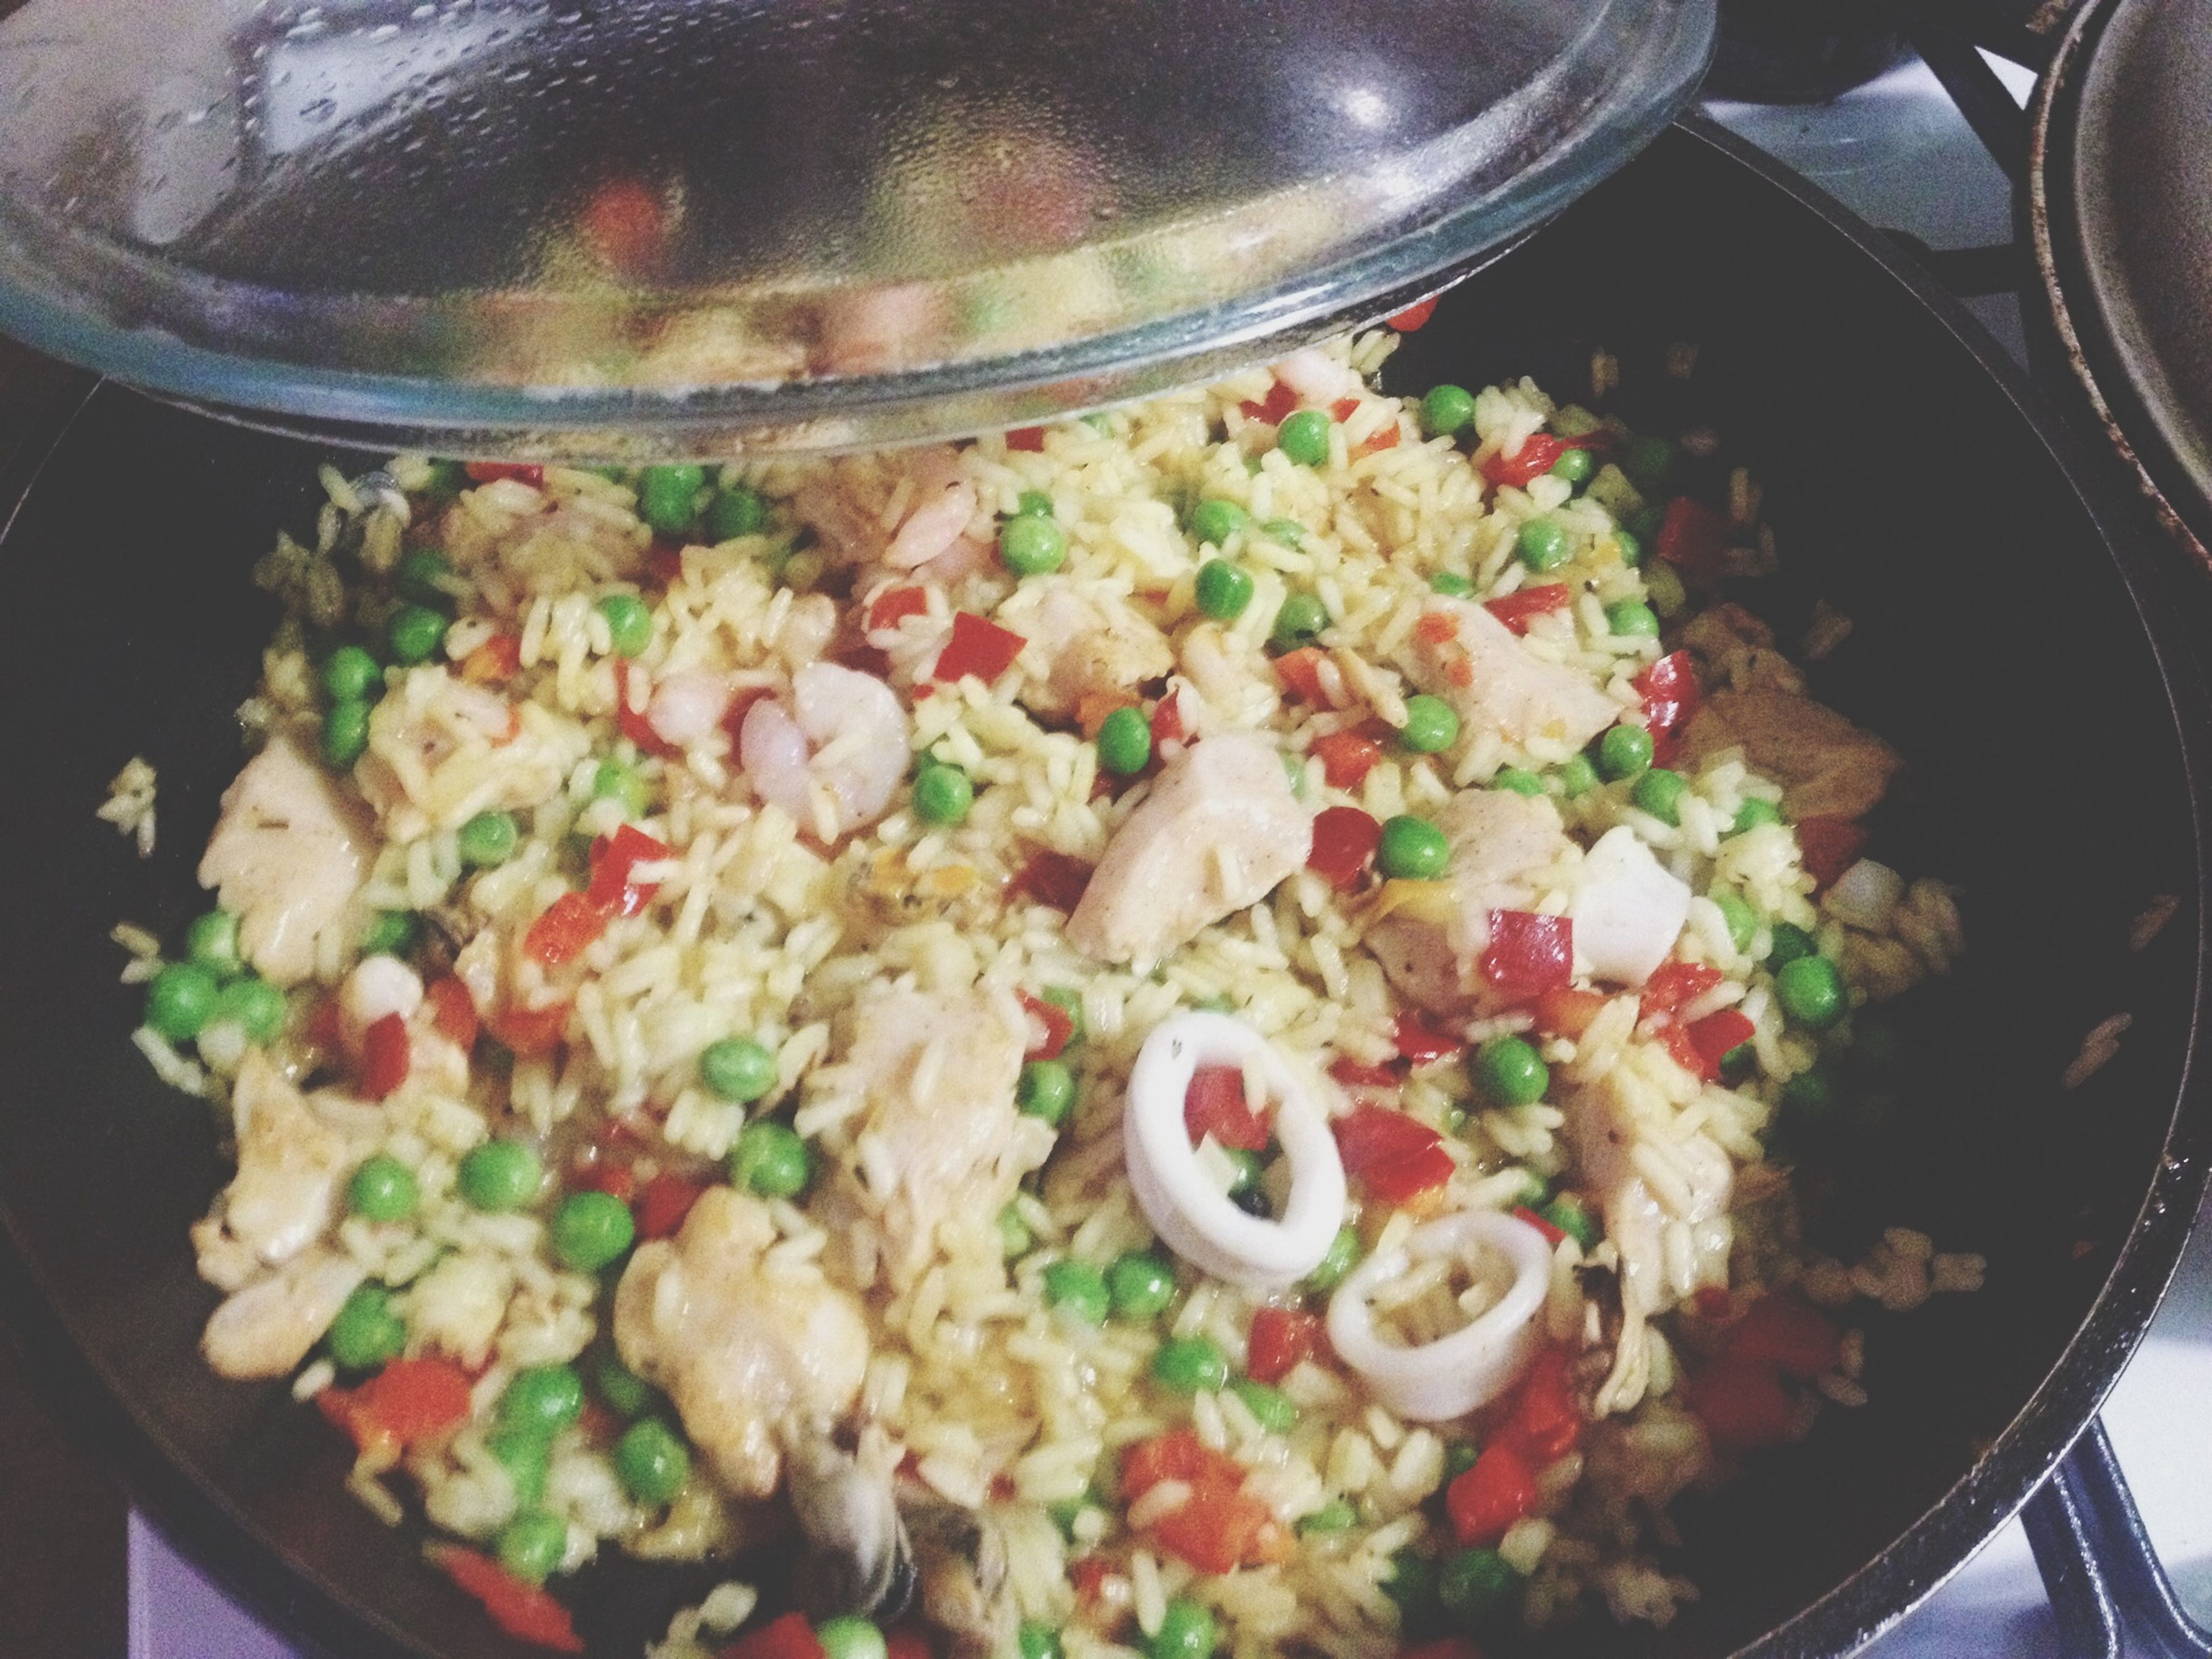 food and drink, food, freshness, indoors, ready-to-eat, healthy eating, meal, plate, bowl, still life, serving size, table, close-up, vegetable, high angle view, salad, indulgence, meat, rice - food staple, spoon